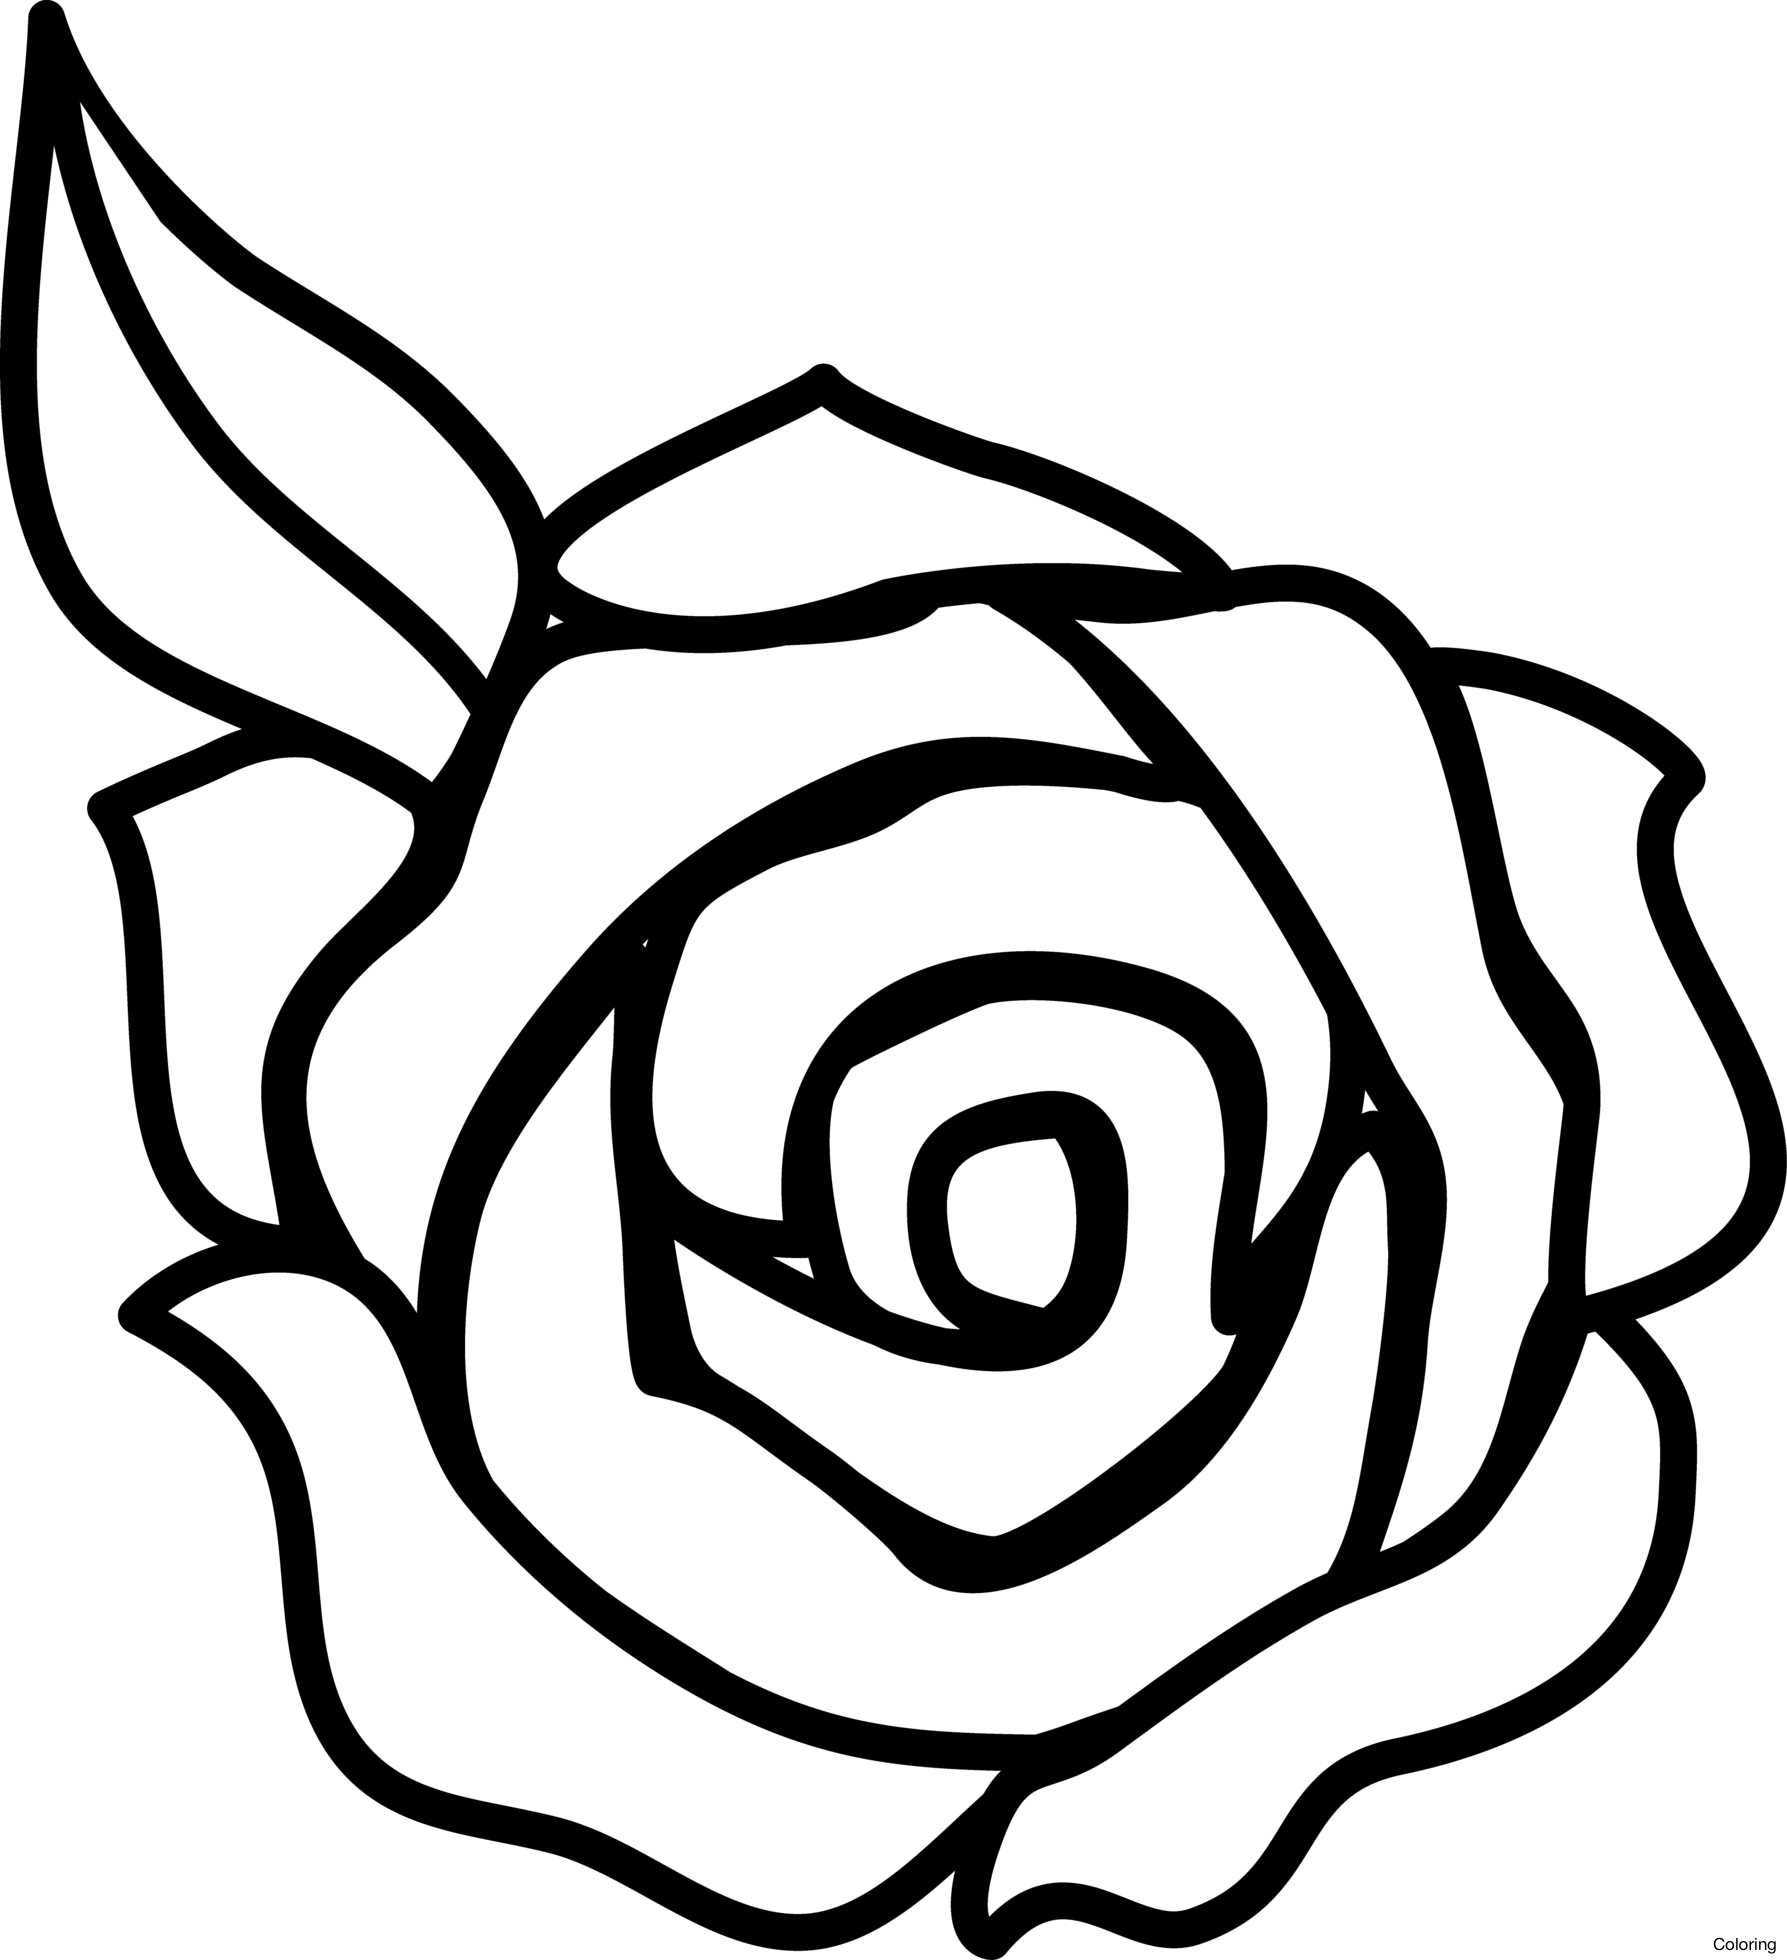 Rose pictures at getdrawings. Ghostface drawing realistic image free library